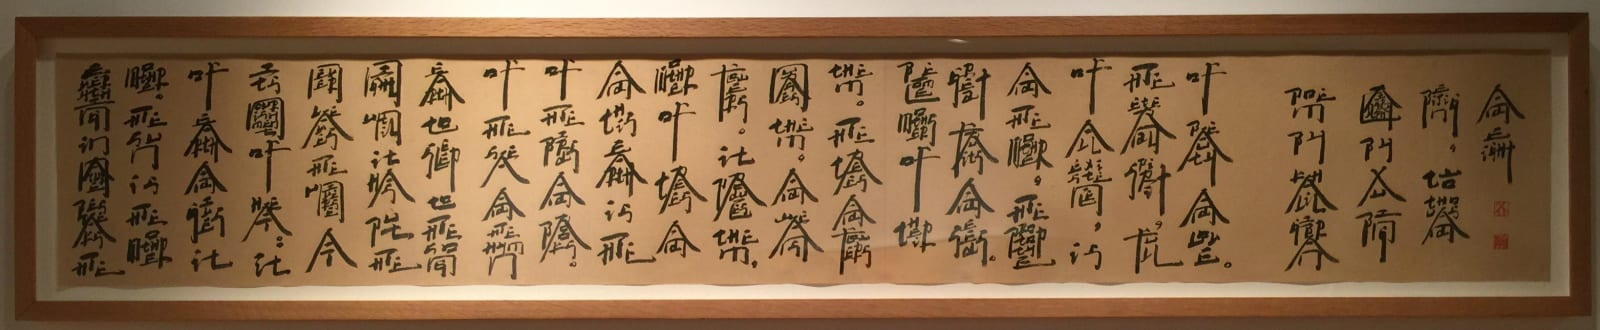 Xu Bing Square Word Calligraphy by Khalil Gibran, 2008